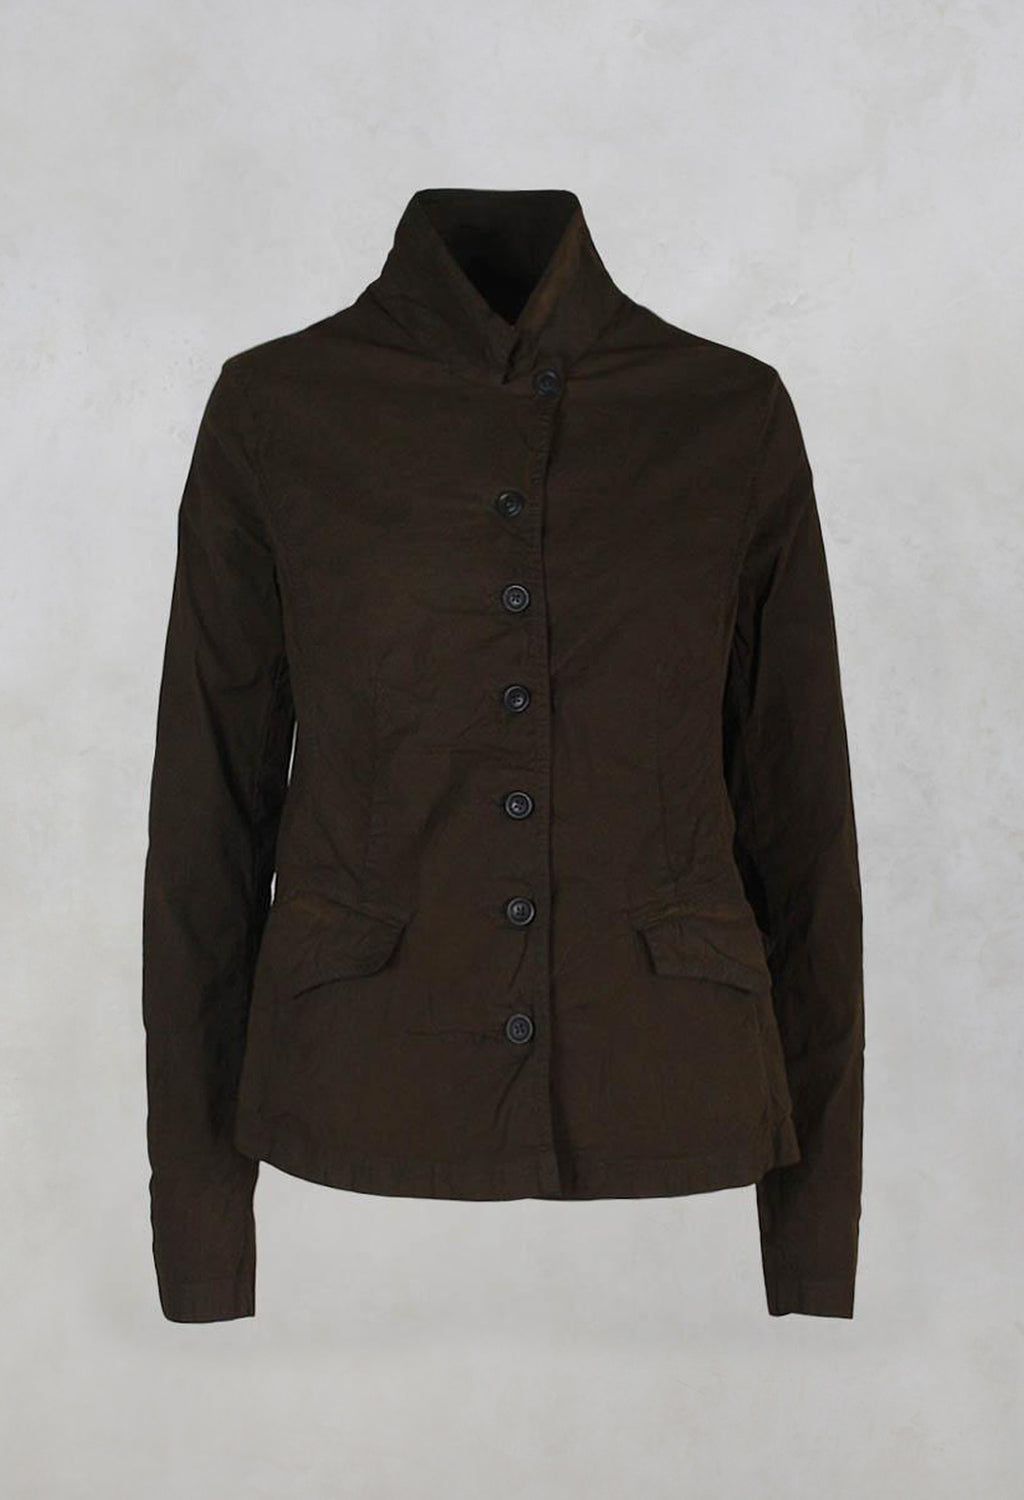 Military Style Jacket with Button Front in Khaki